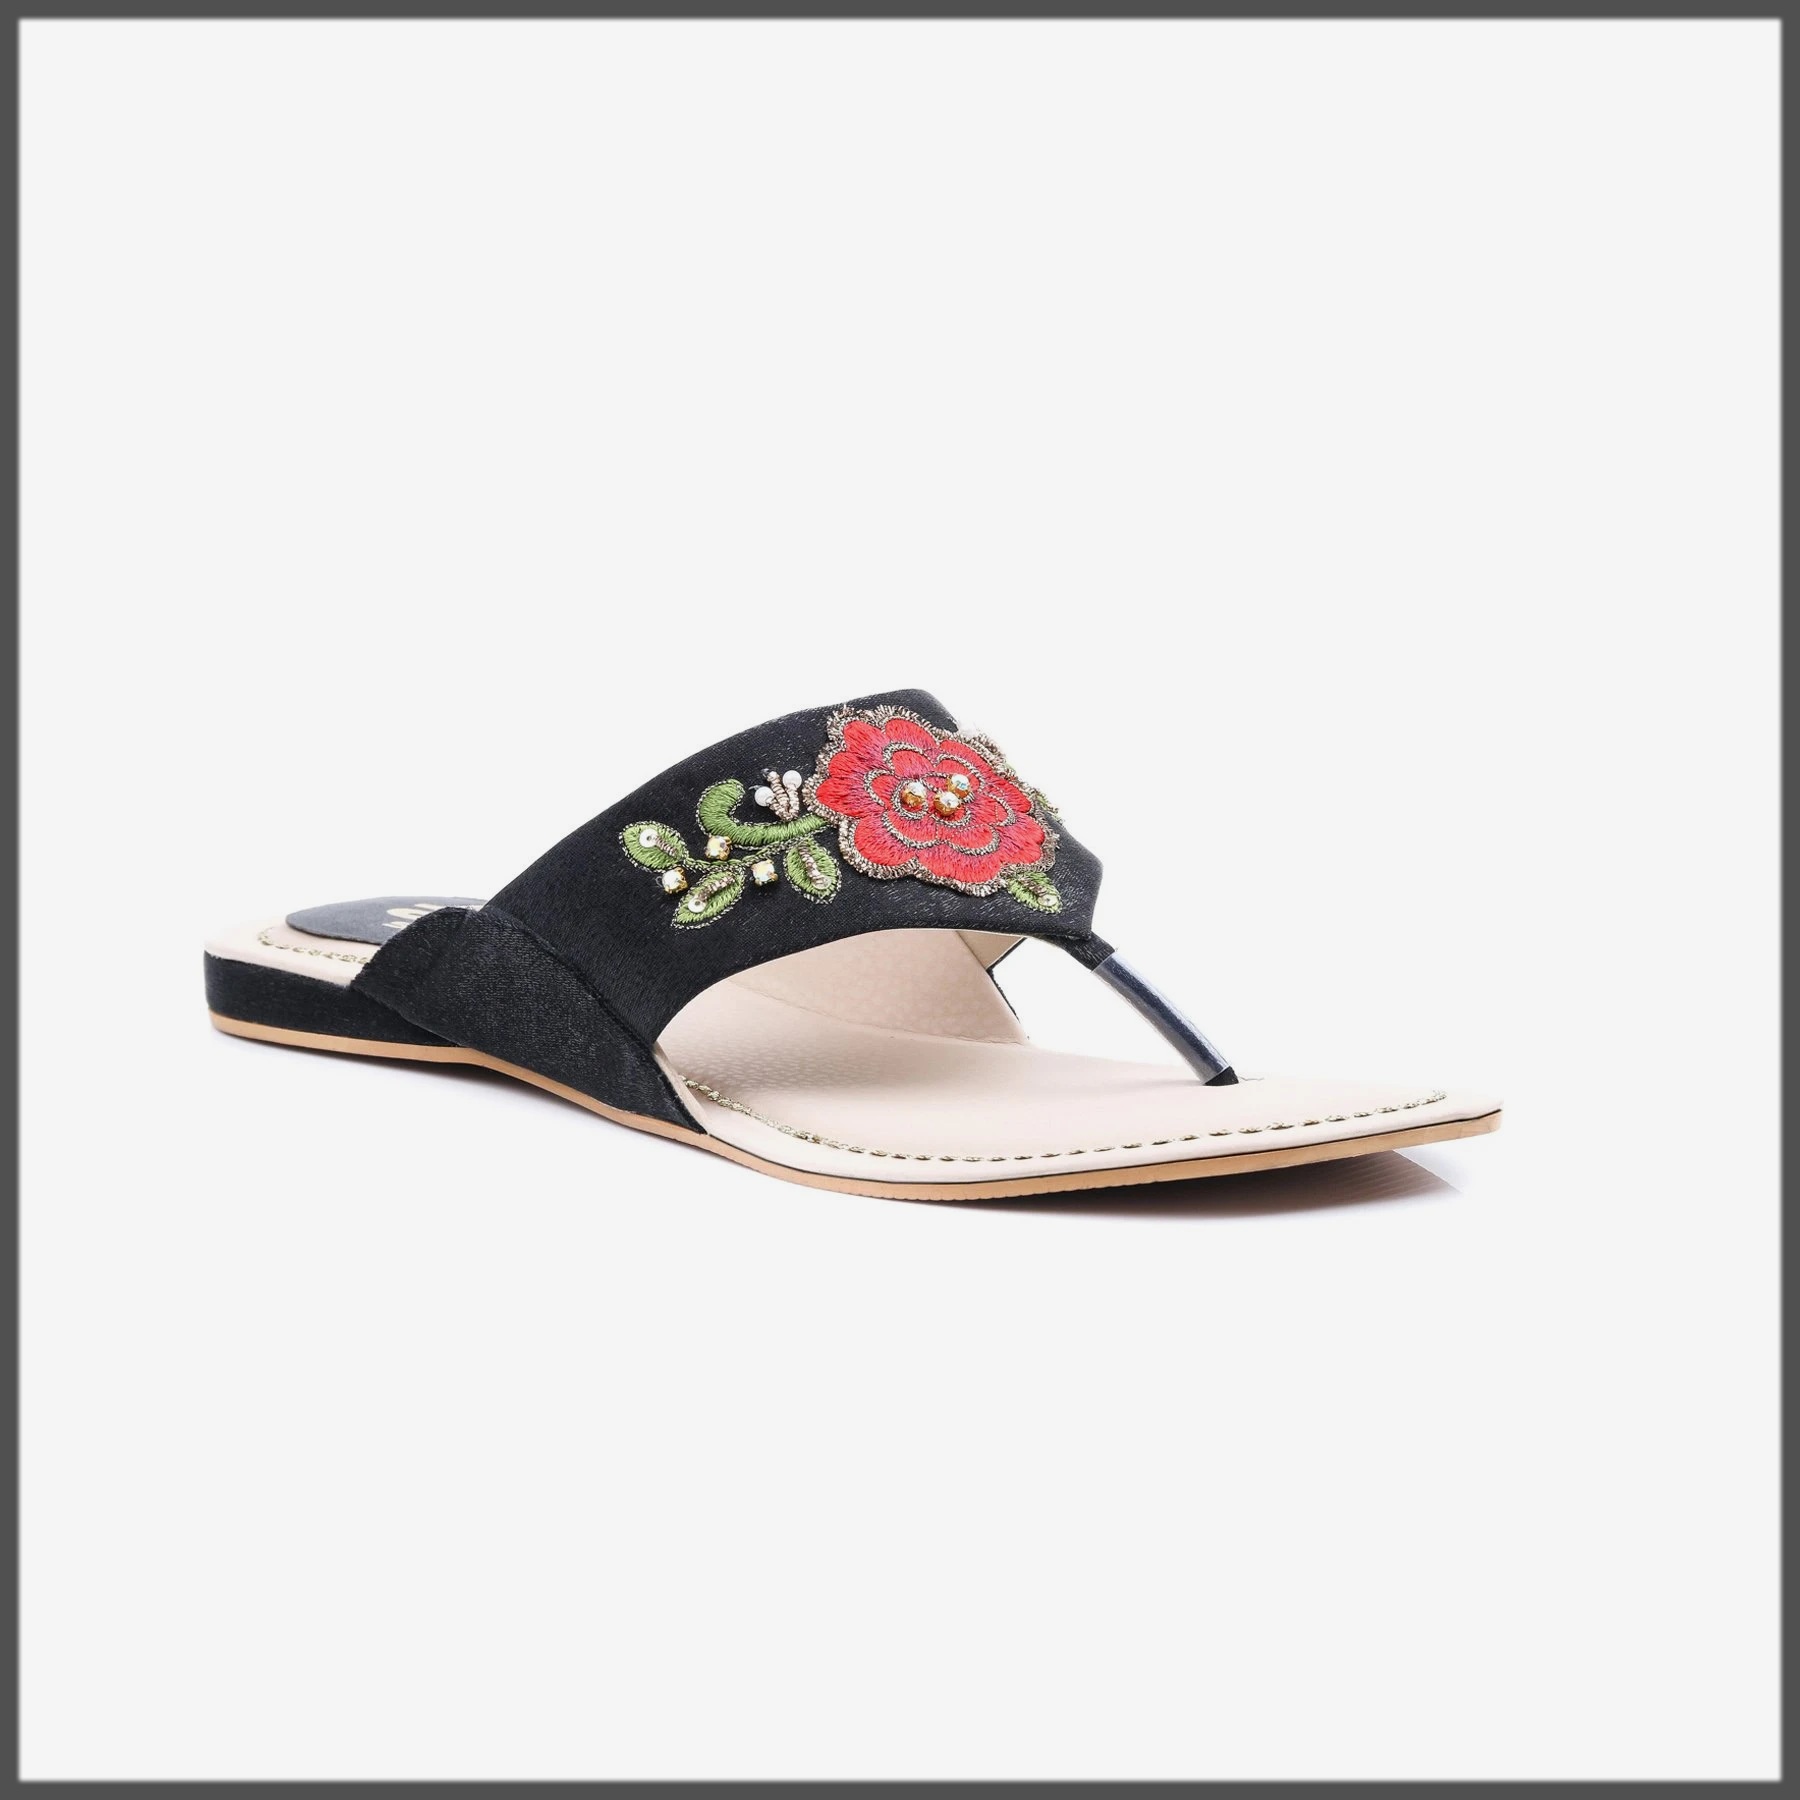 sleek black summer slipper for women